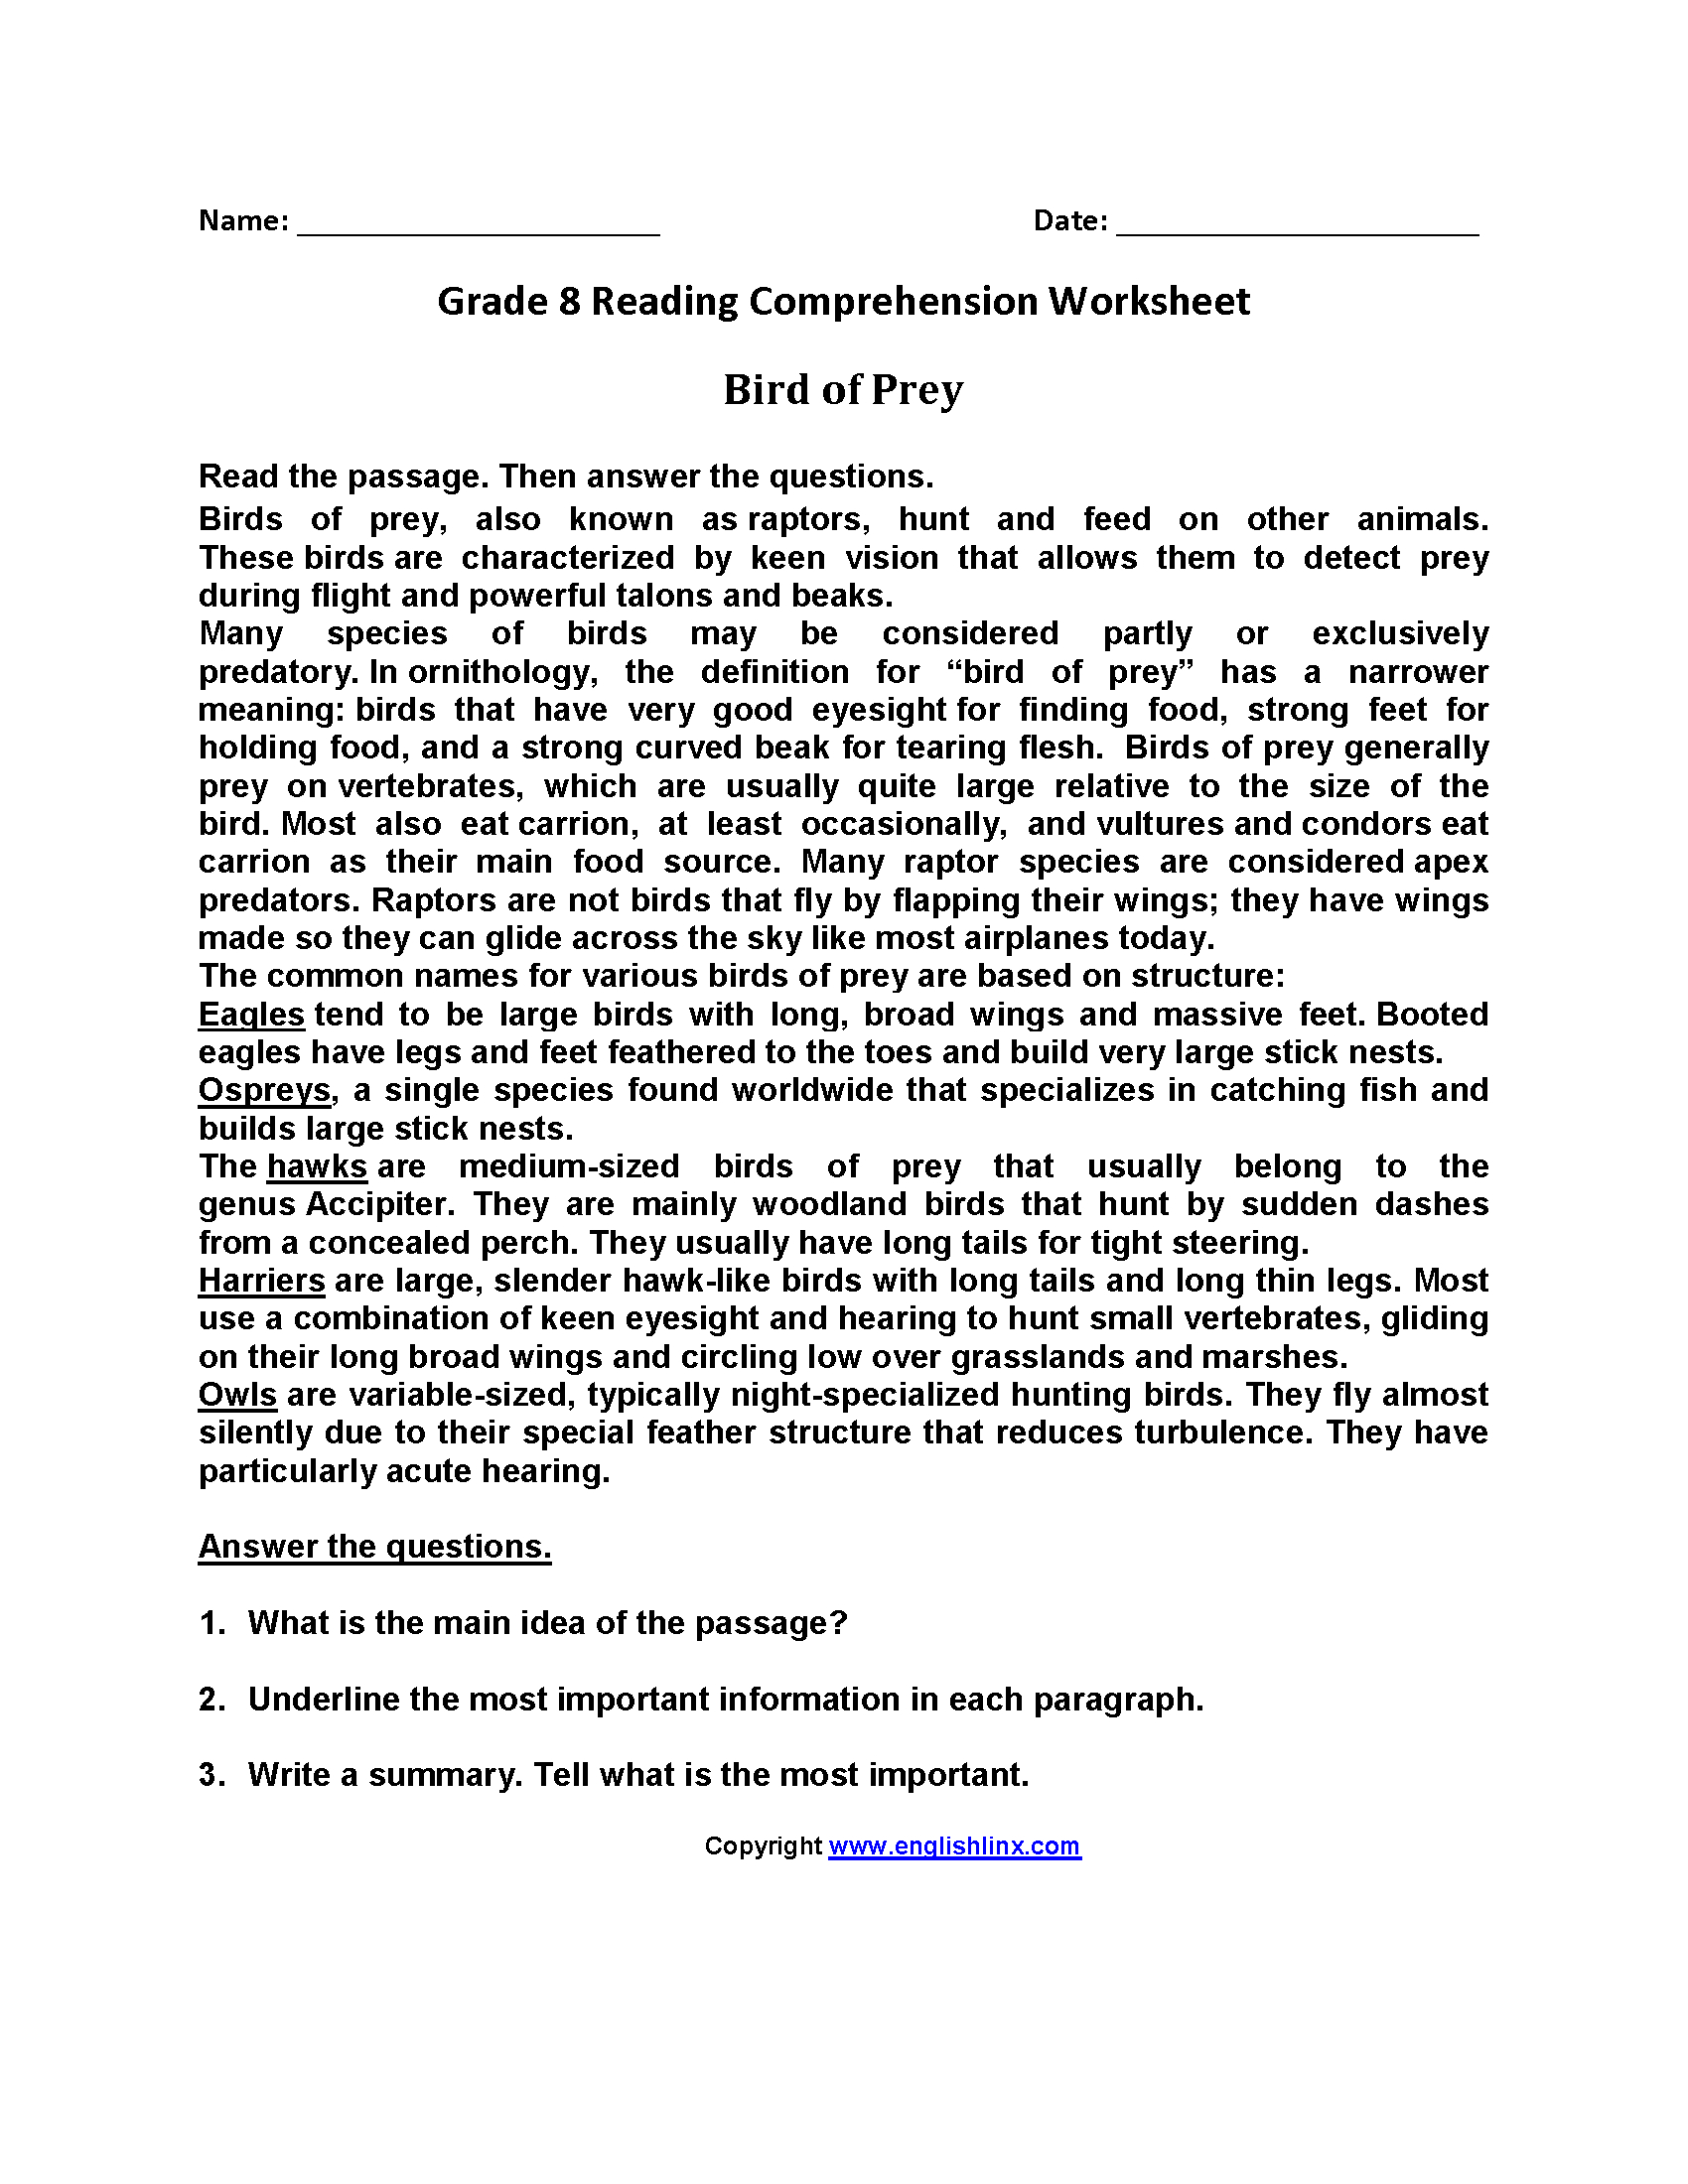 Reading Worksheets | Eighth Grade Reading Worksheets - Third Grade Reading Worksheets Free Printable